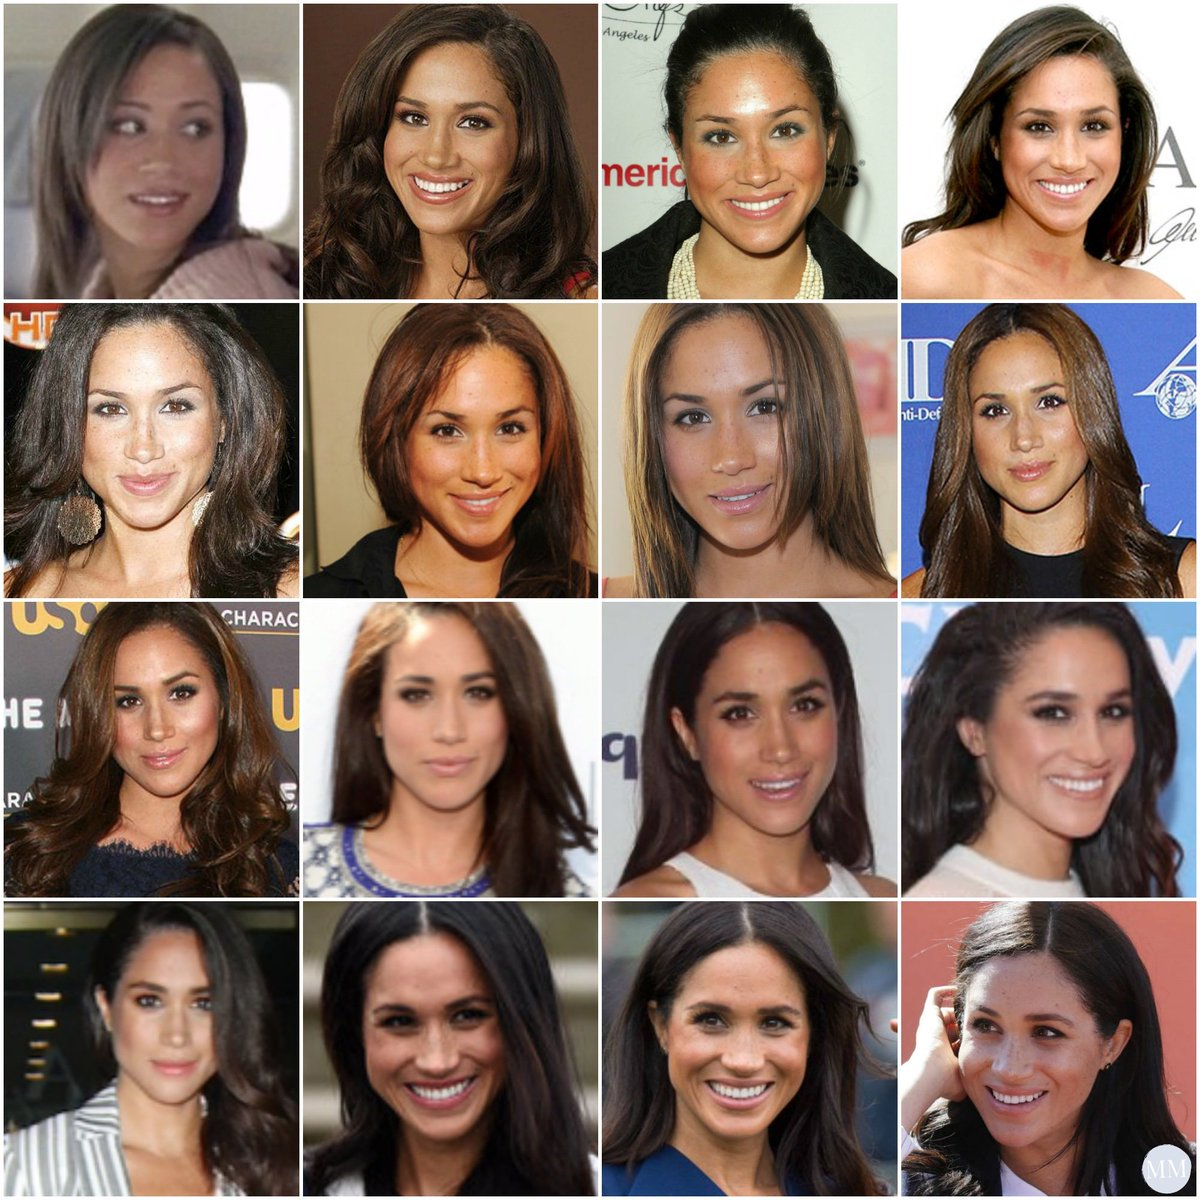 One thing that has remained (mostly) constant in Meghan's life since 2004? Her hair! Looking allll the way back to 2004, her long locks are a trademark look. #TBT https://t.co/MZHiSkRwbf